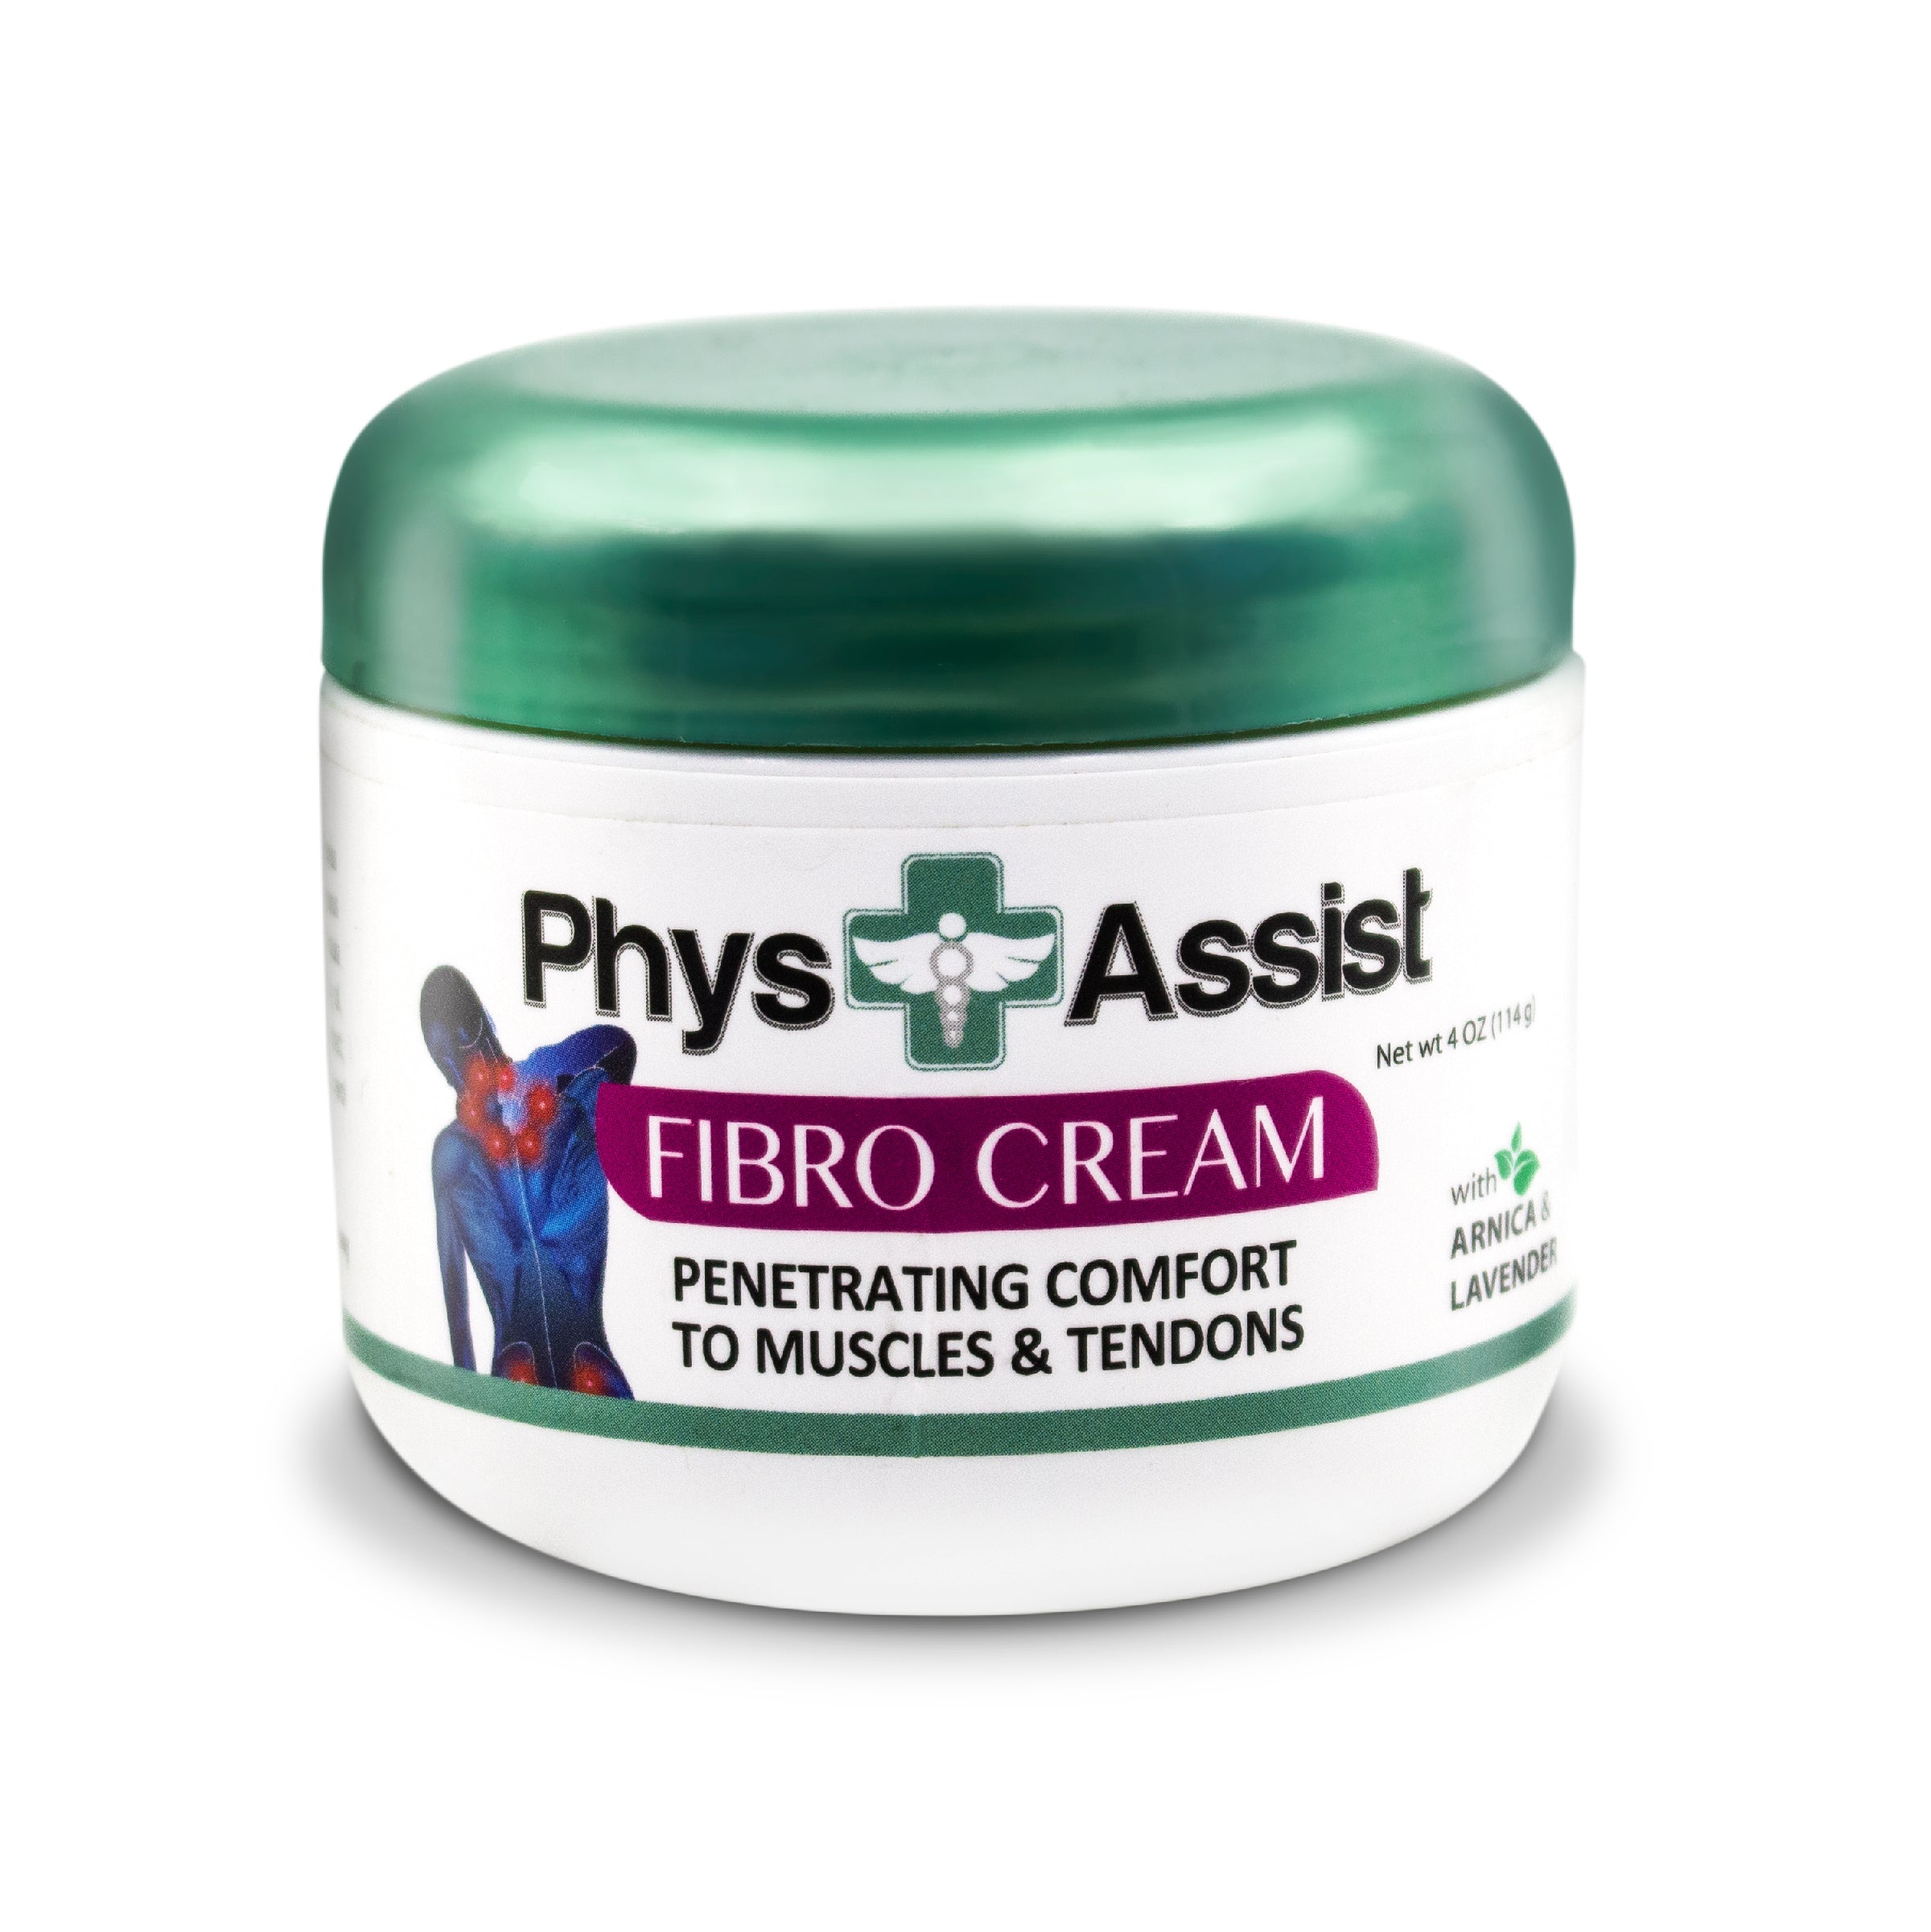 PhysAssist Fibro Cream